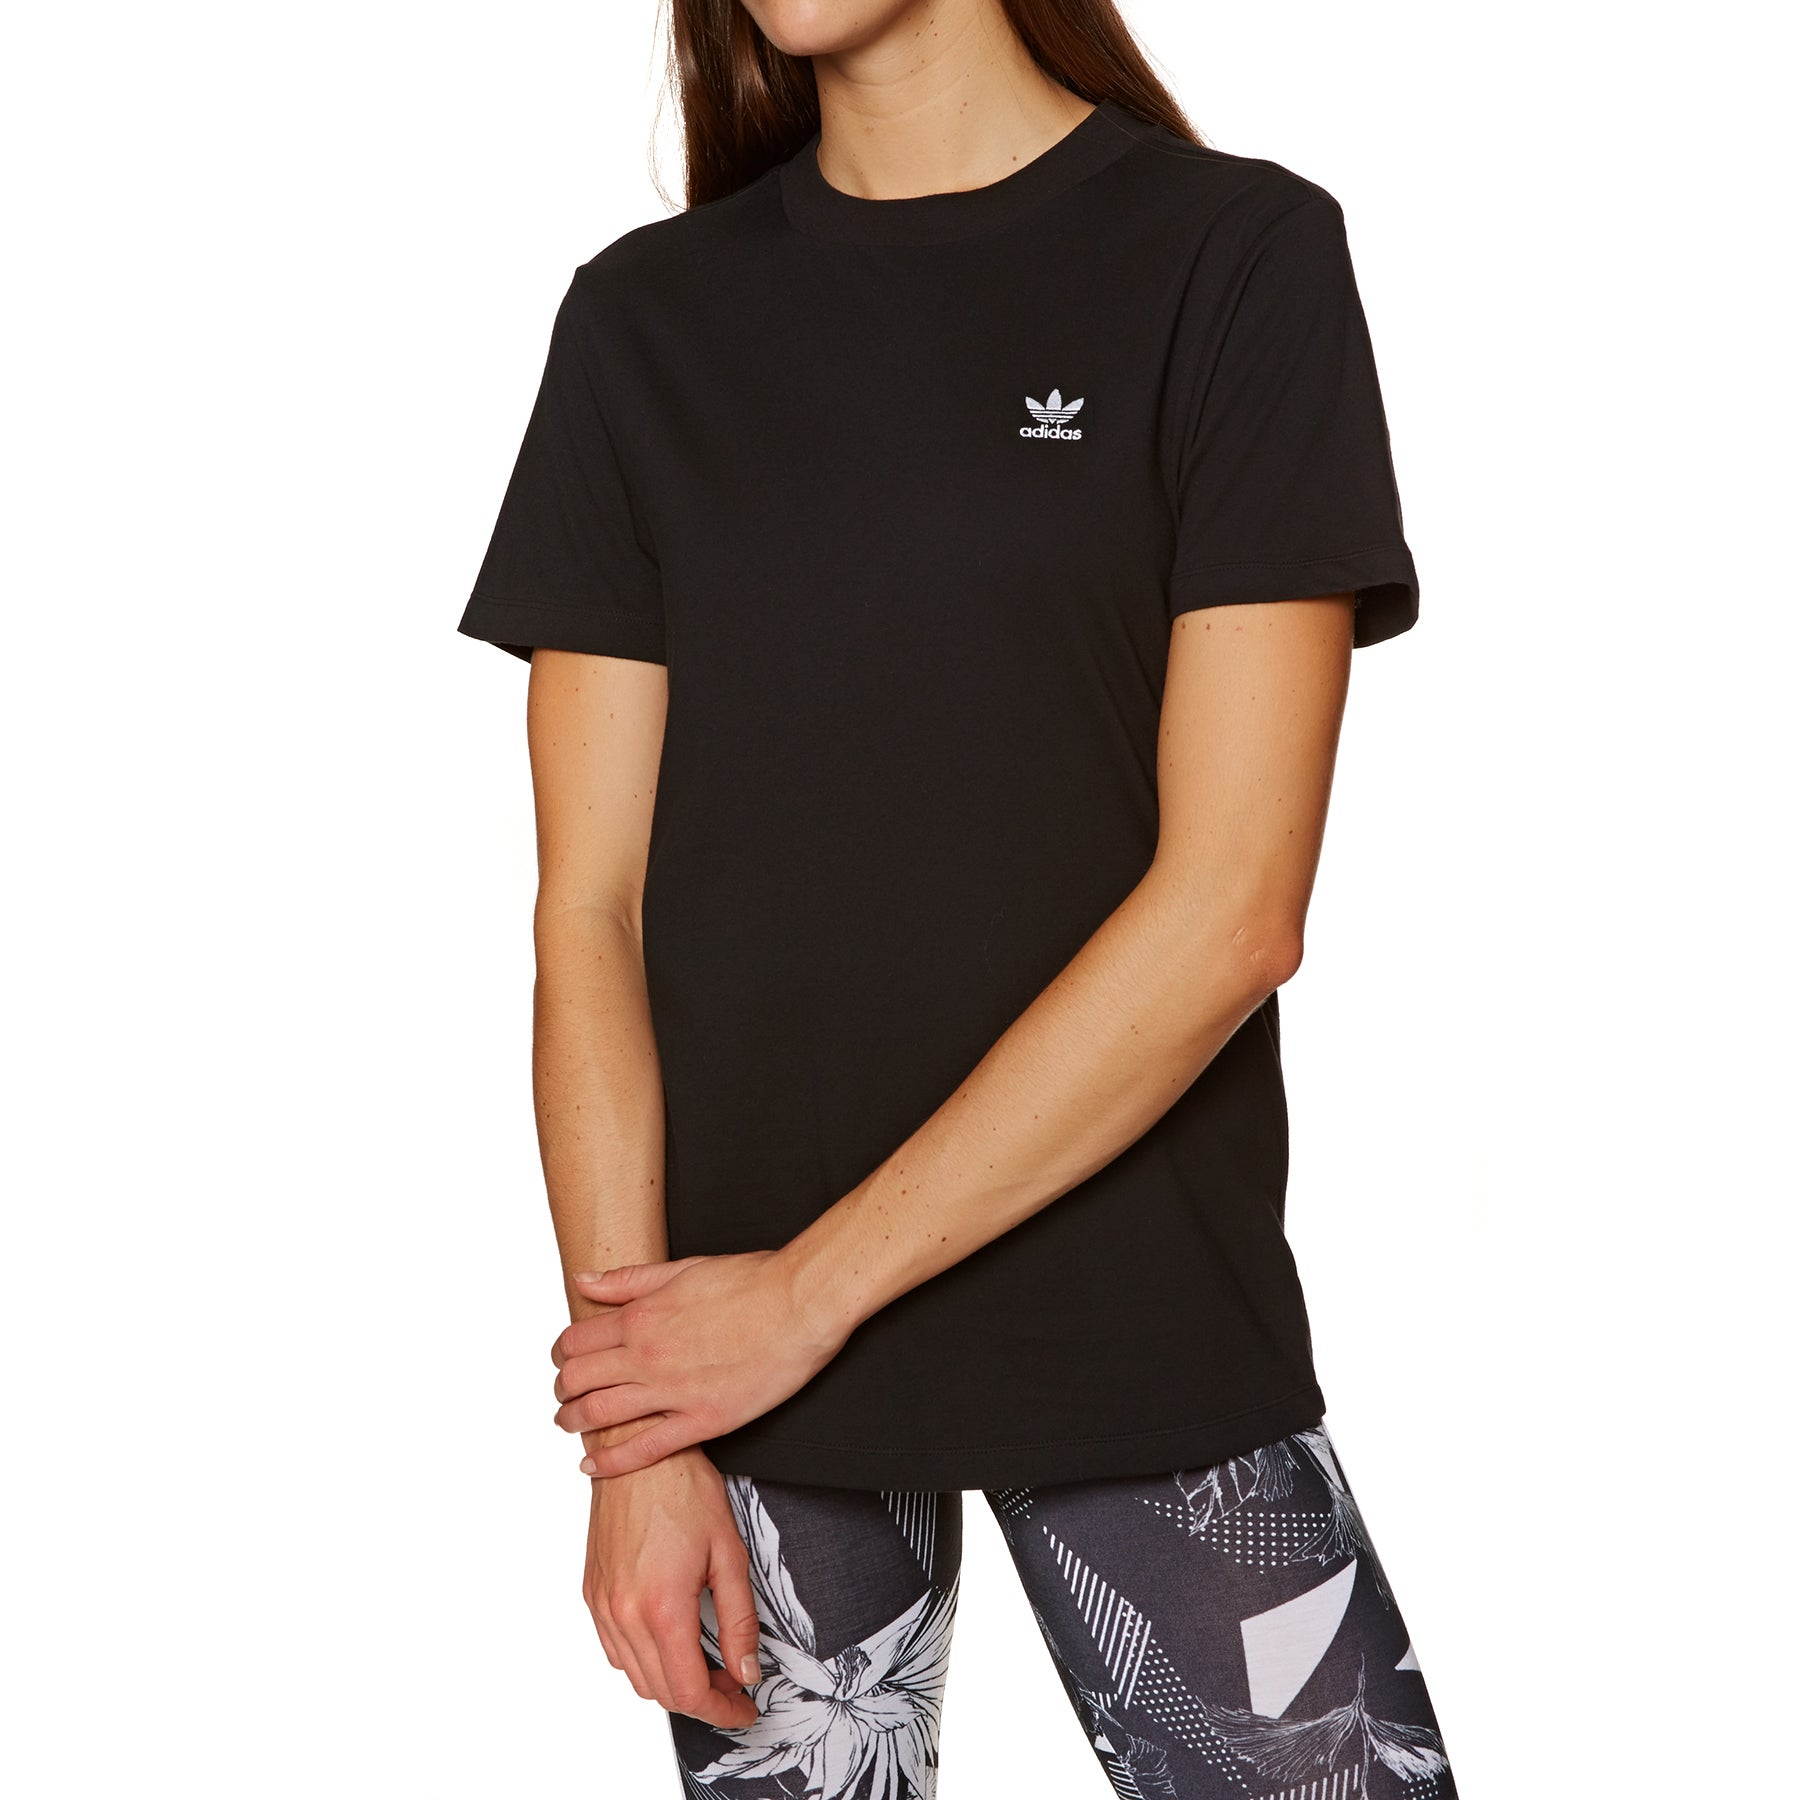 Adidas Originals Complements Damen Kurzarm T Shirt  billig